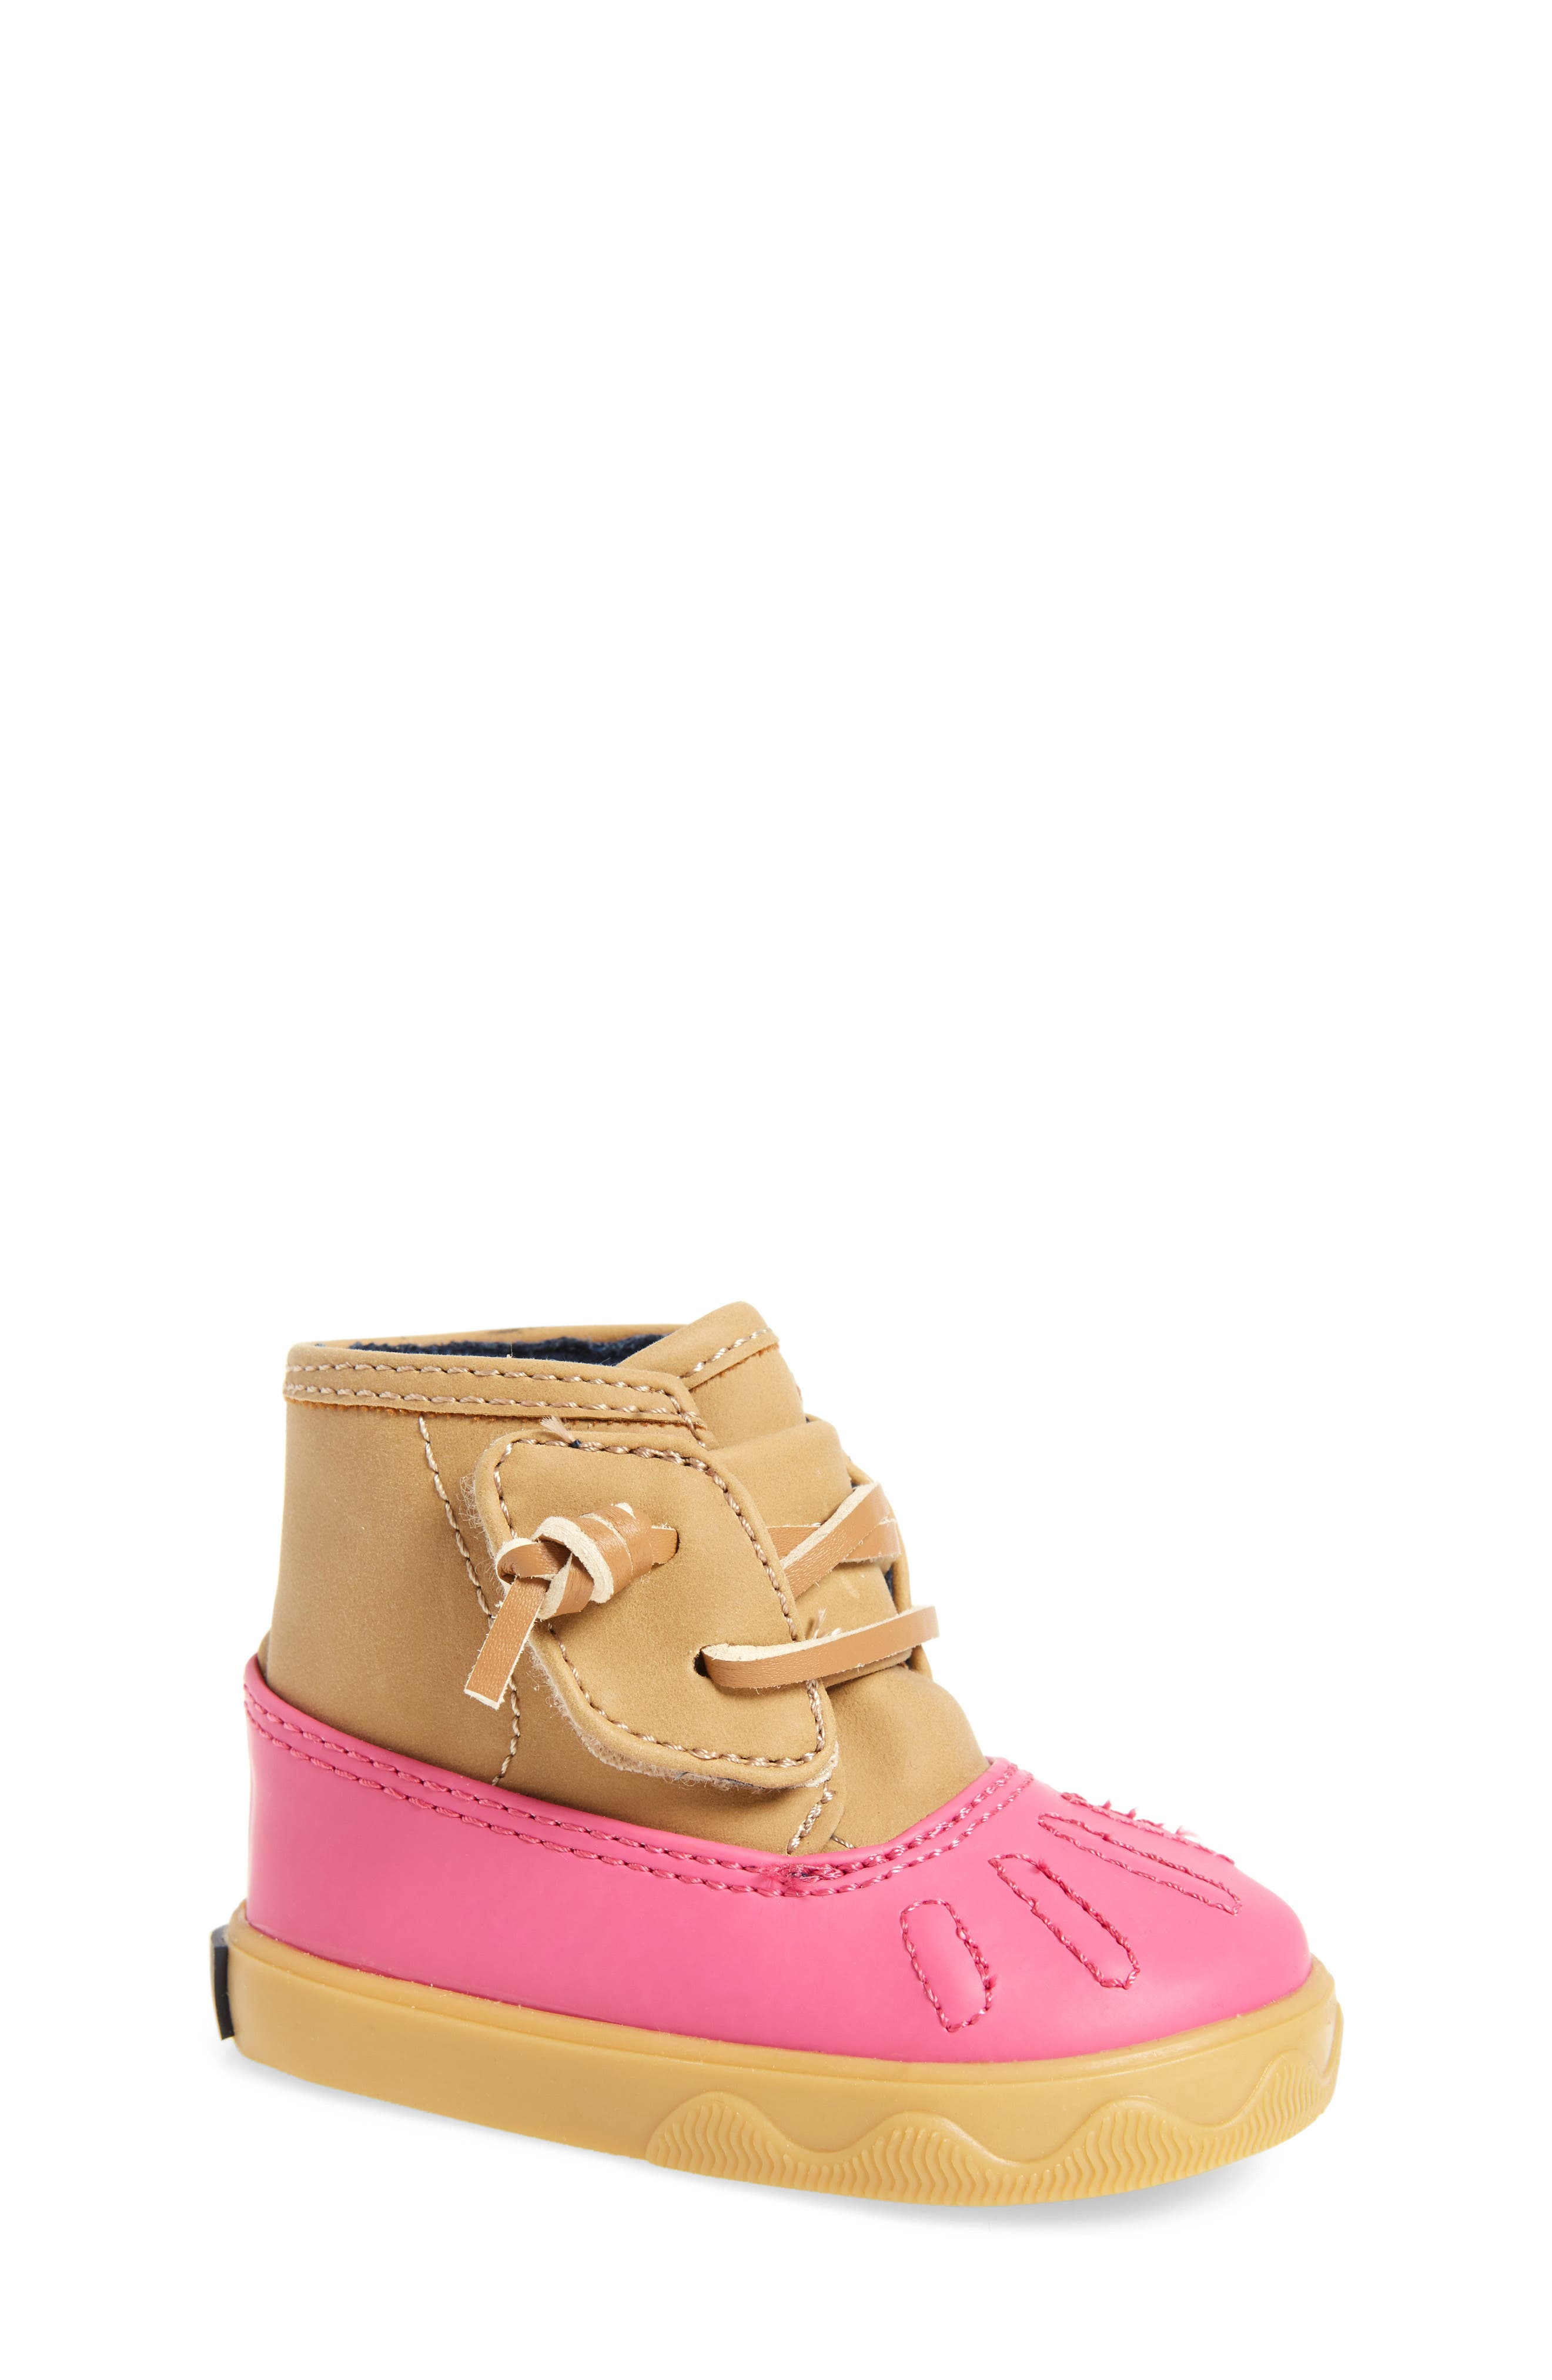 Alternate Image 1 Selected - Sperry Icestorm Crib Duck Bootie (Baby)